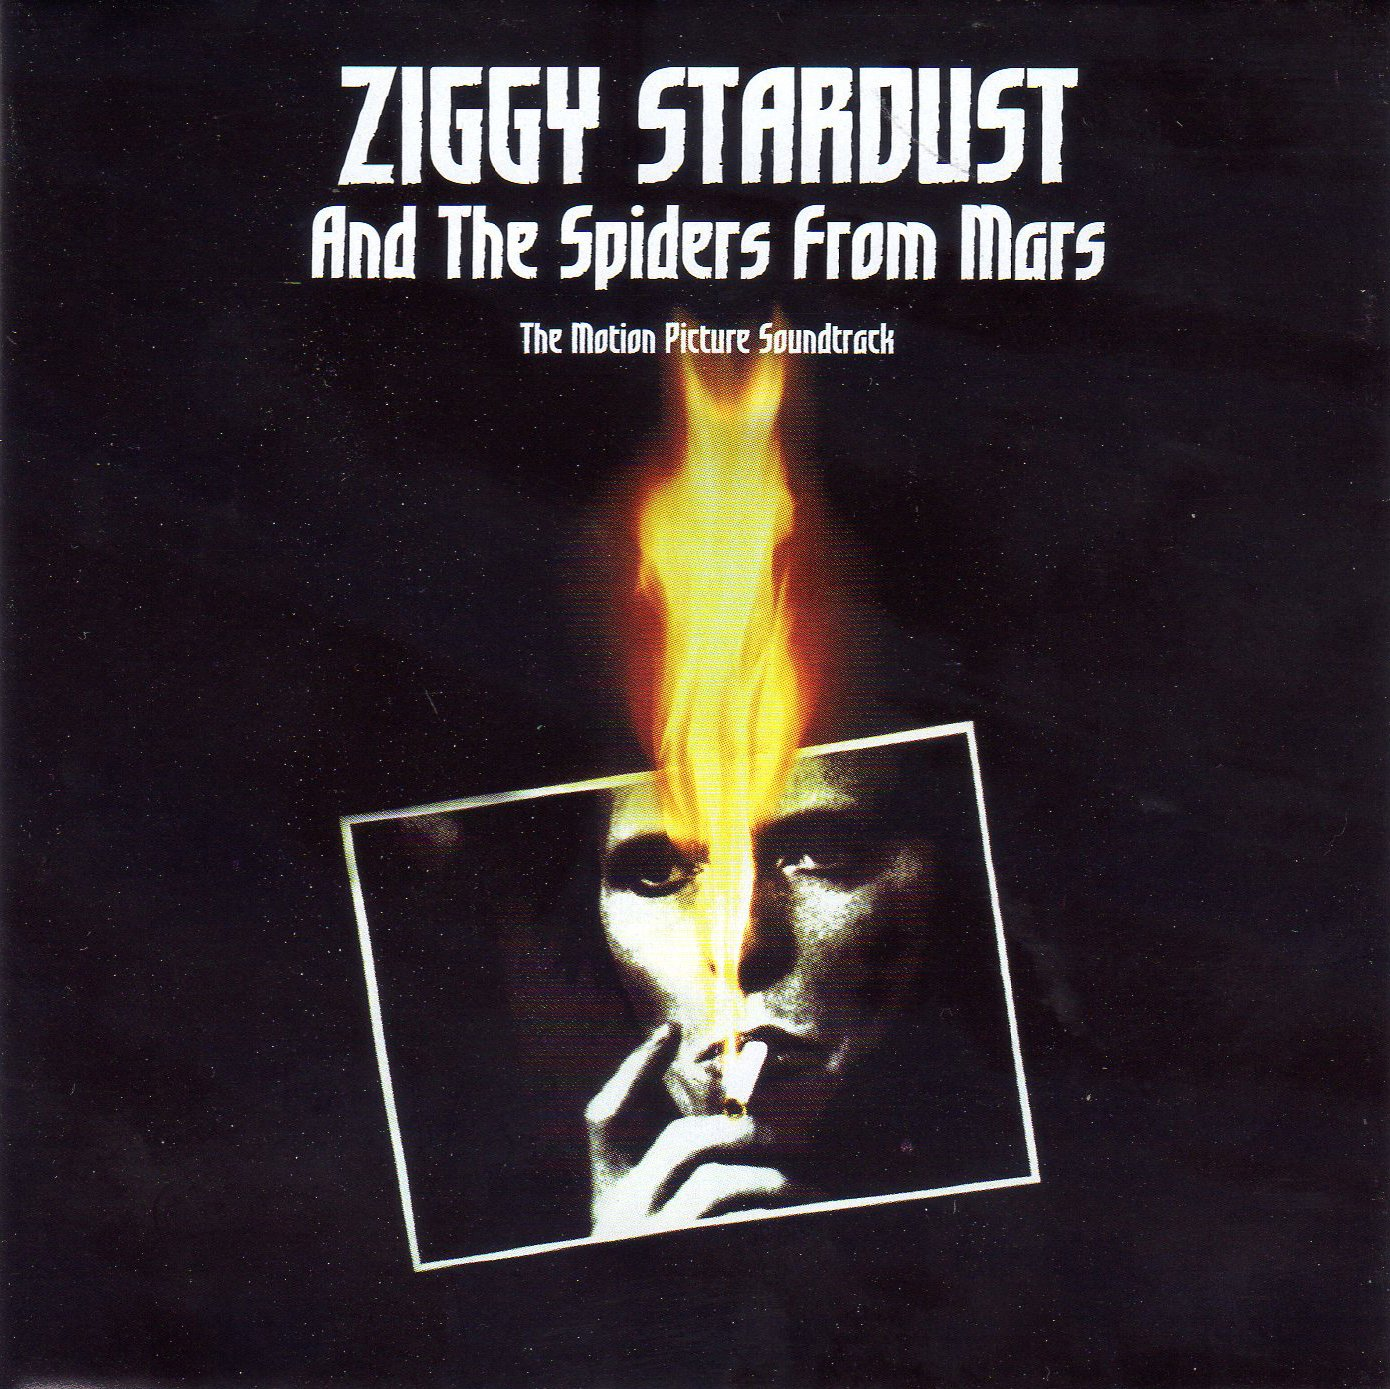 デイヴィッド・ボウイ / Ziggy Stardust And The Spiders From Mars - The Motion Picture Soundtrack